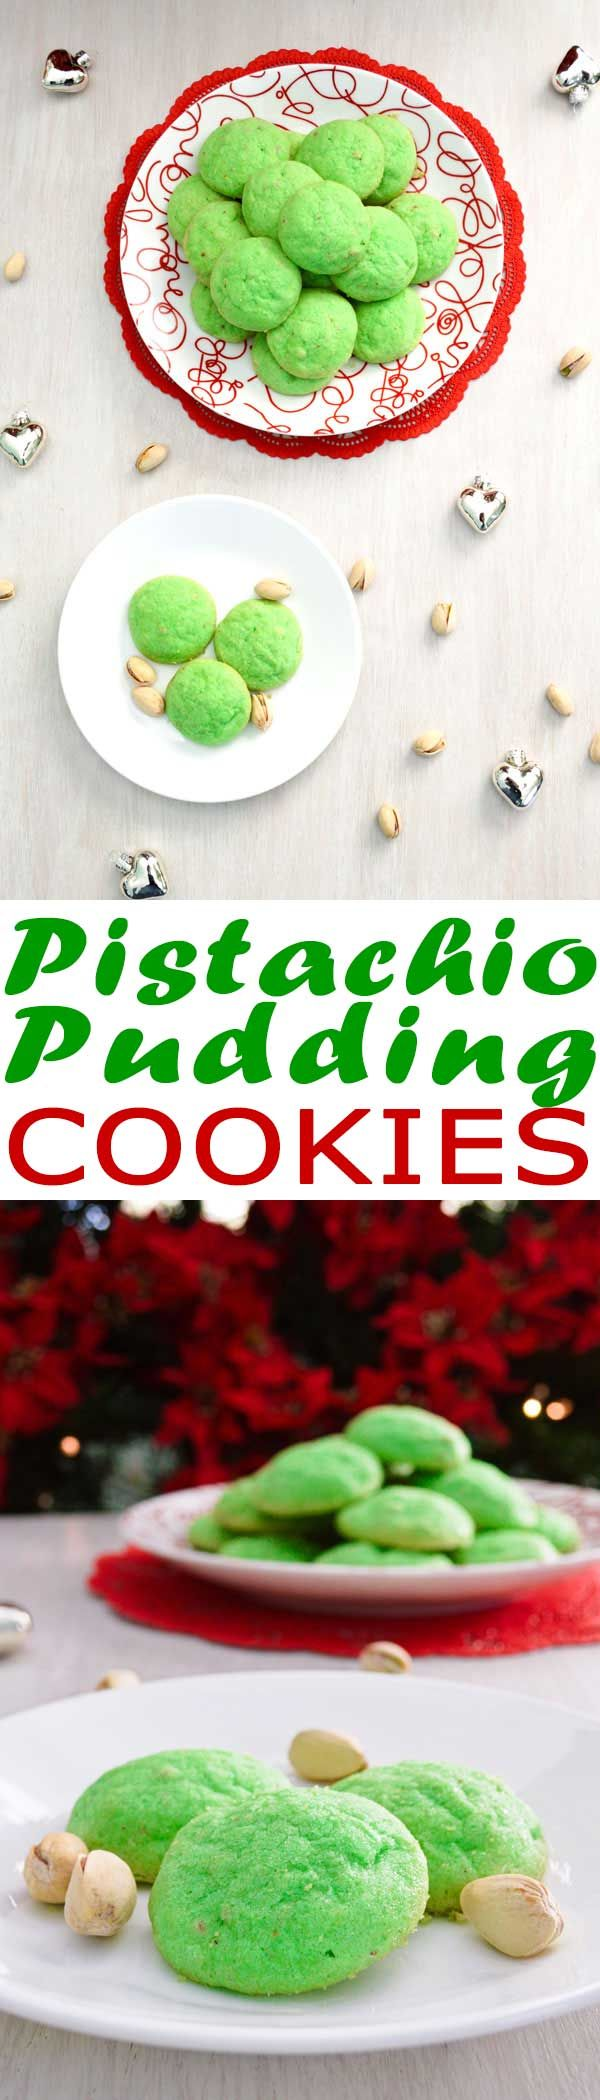 Pistachio Pudding Cookies - easy Christmas cookie recipe that are crisp on the outside with a soft interior! #christmas #cookies